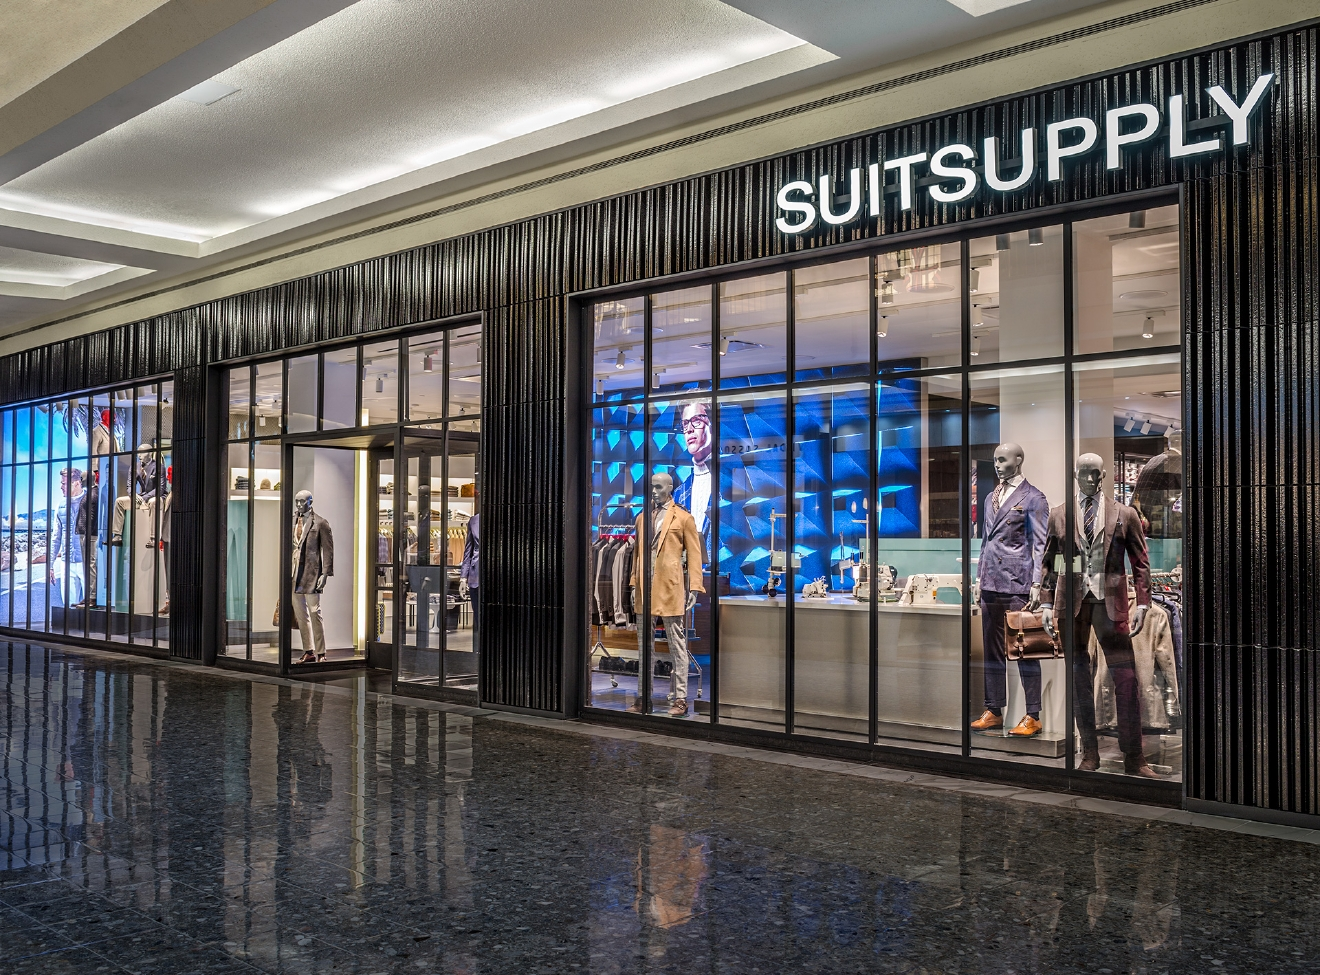 Suitsupply prides themselves on offering real suiting for real men that really fits. Tailoring is done in the store while you wait; allowing customers to leave with the perfect fitting suit all in a timely manner. (Suitsupply)